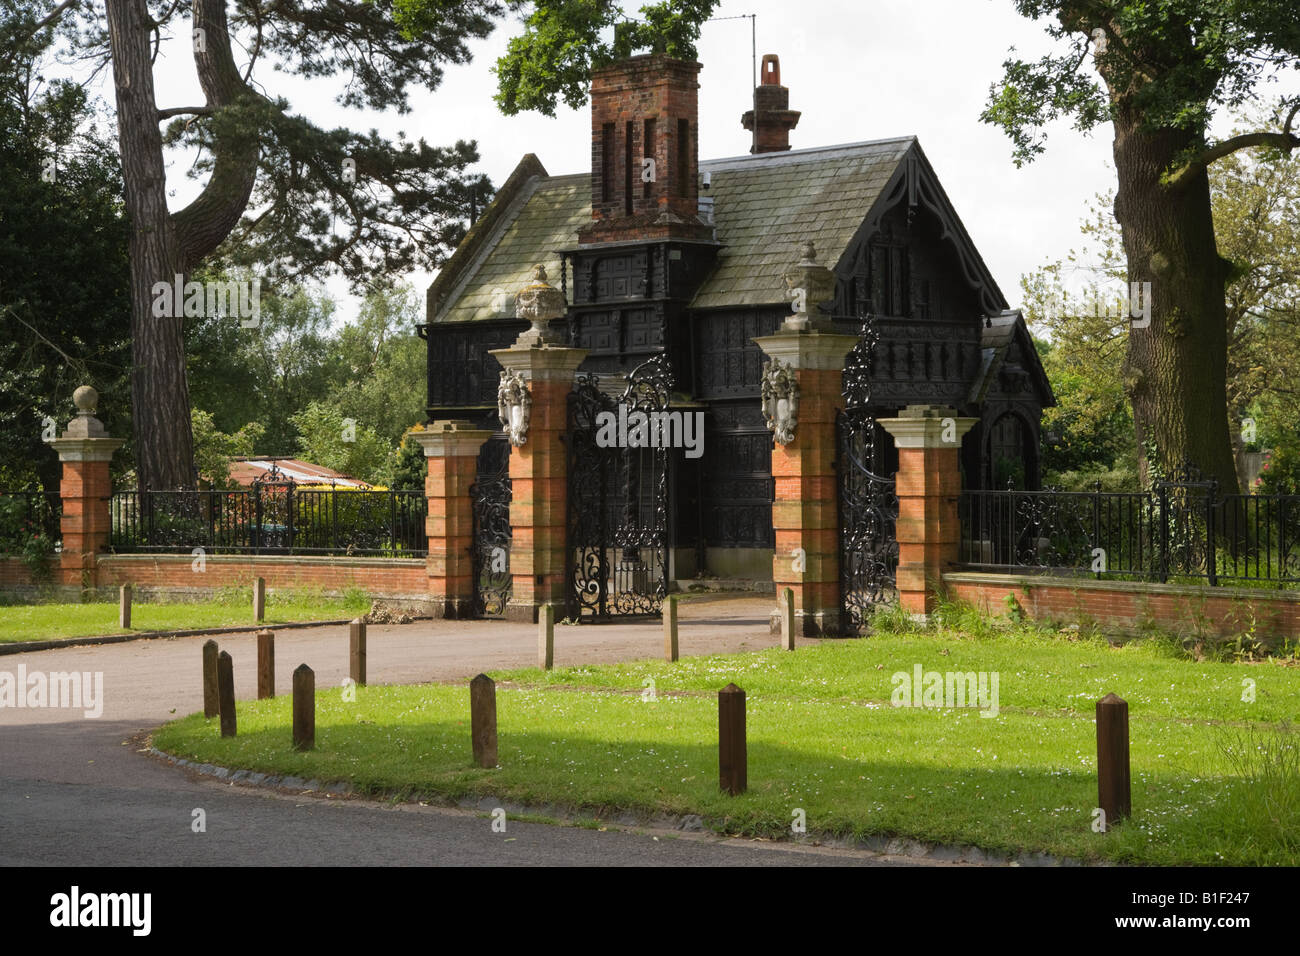 Oak Lodge Is The Entrance To The Hall Barn Estate In Beaconsfield Stock Photo Alamy